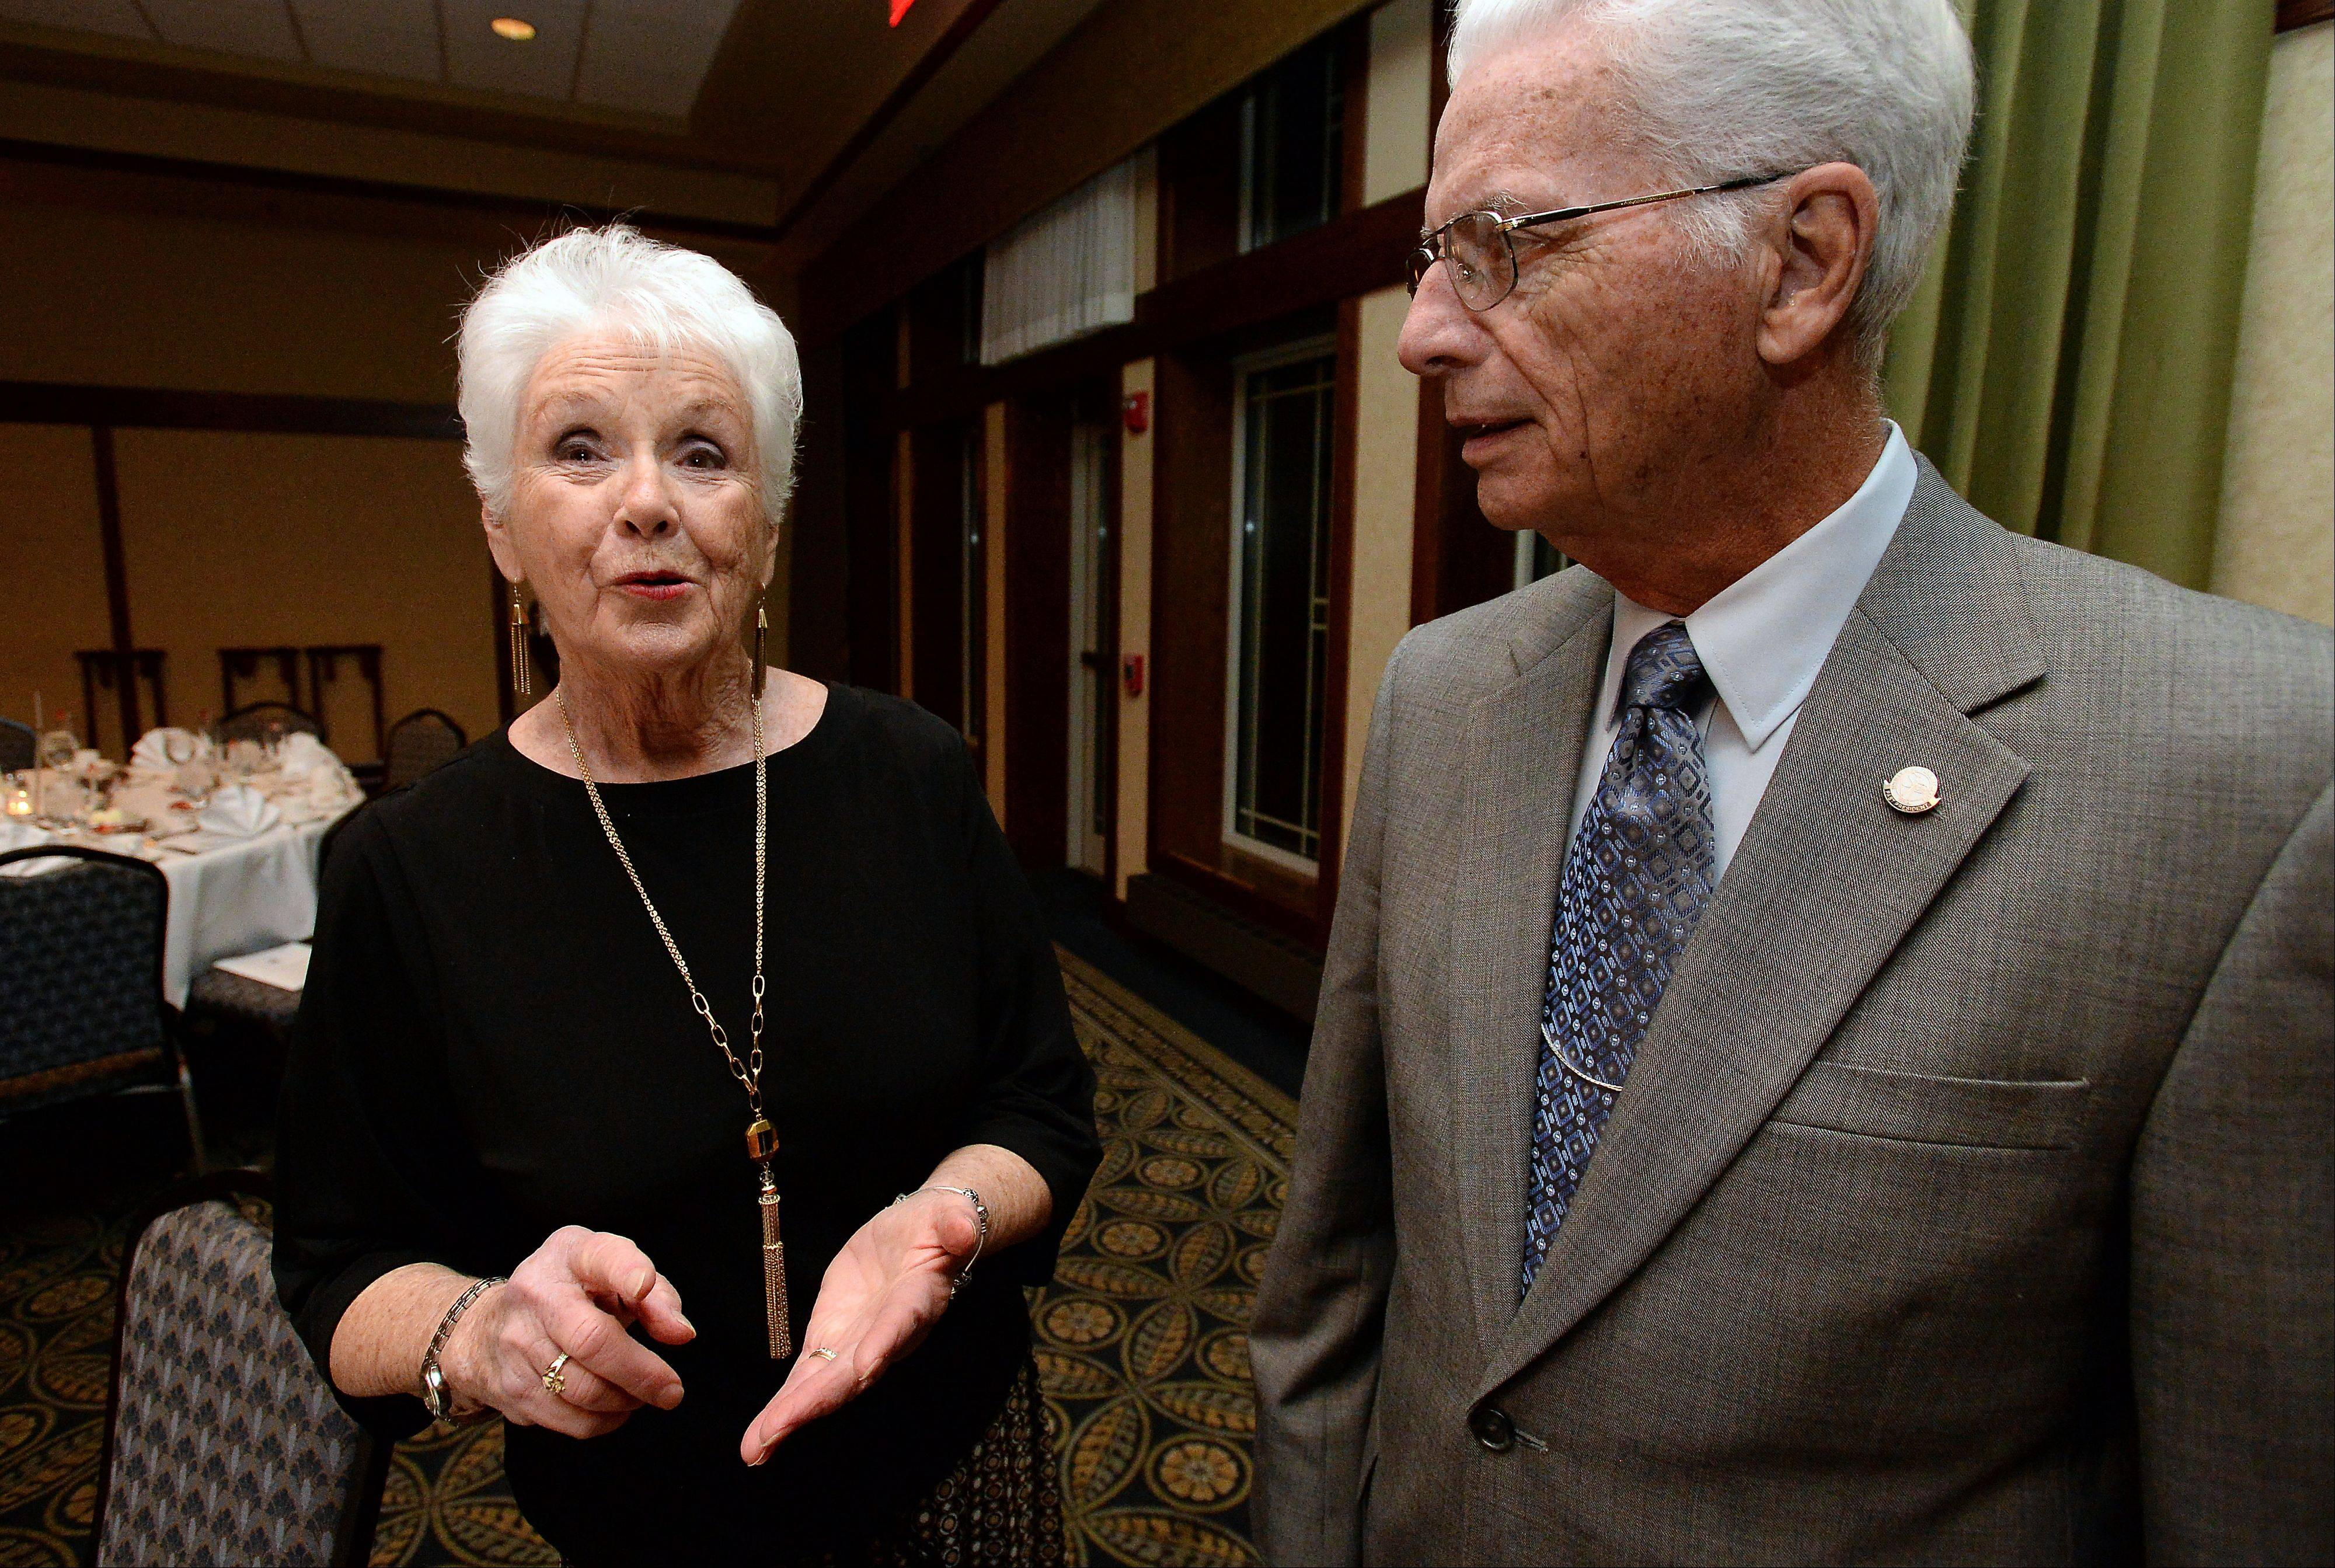 Jane Sherlock of Buffalo Grove talks with her husband, Dan, about the activities which led to her being honored with the Senior Volunteer Award at the Heart of Buffalo Grove Awards Gala on Saturday.